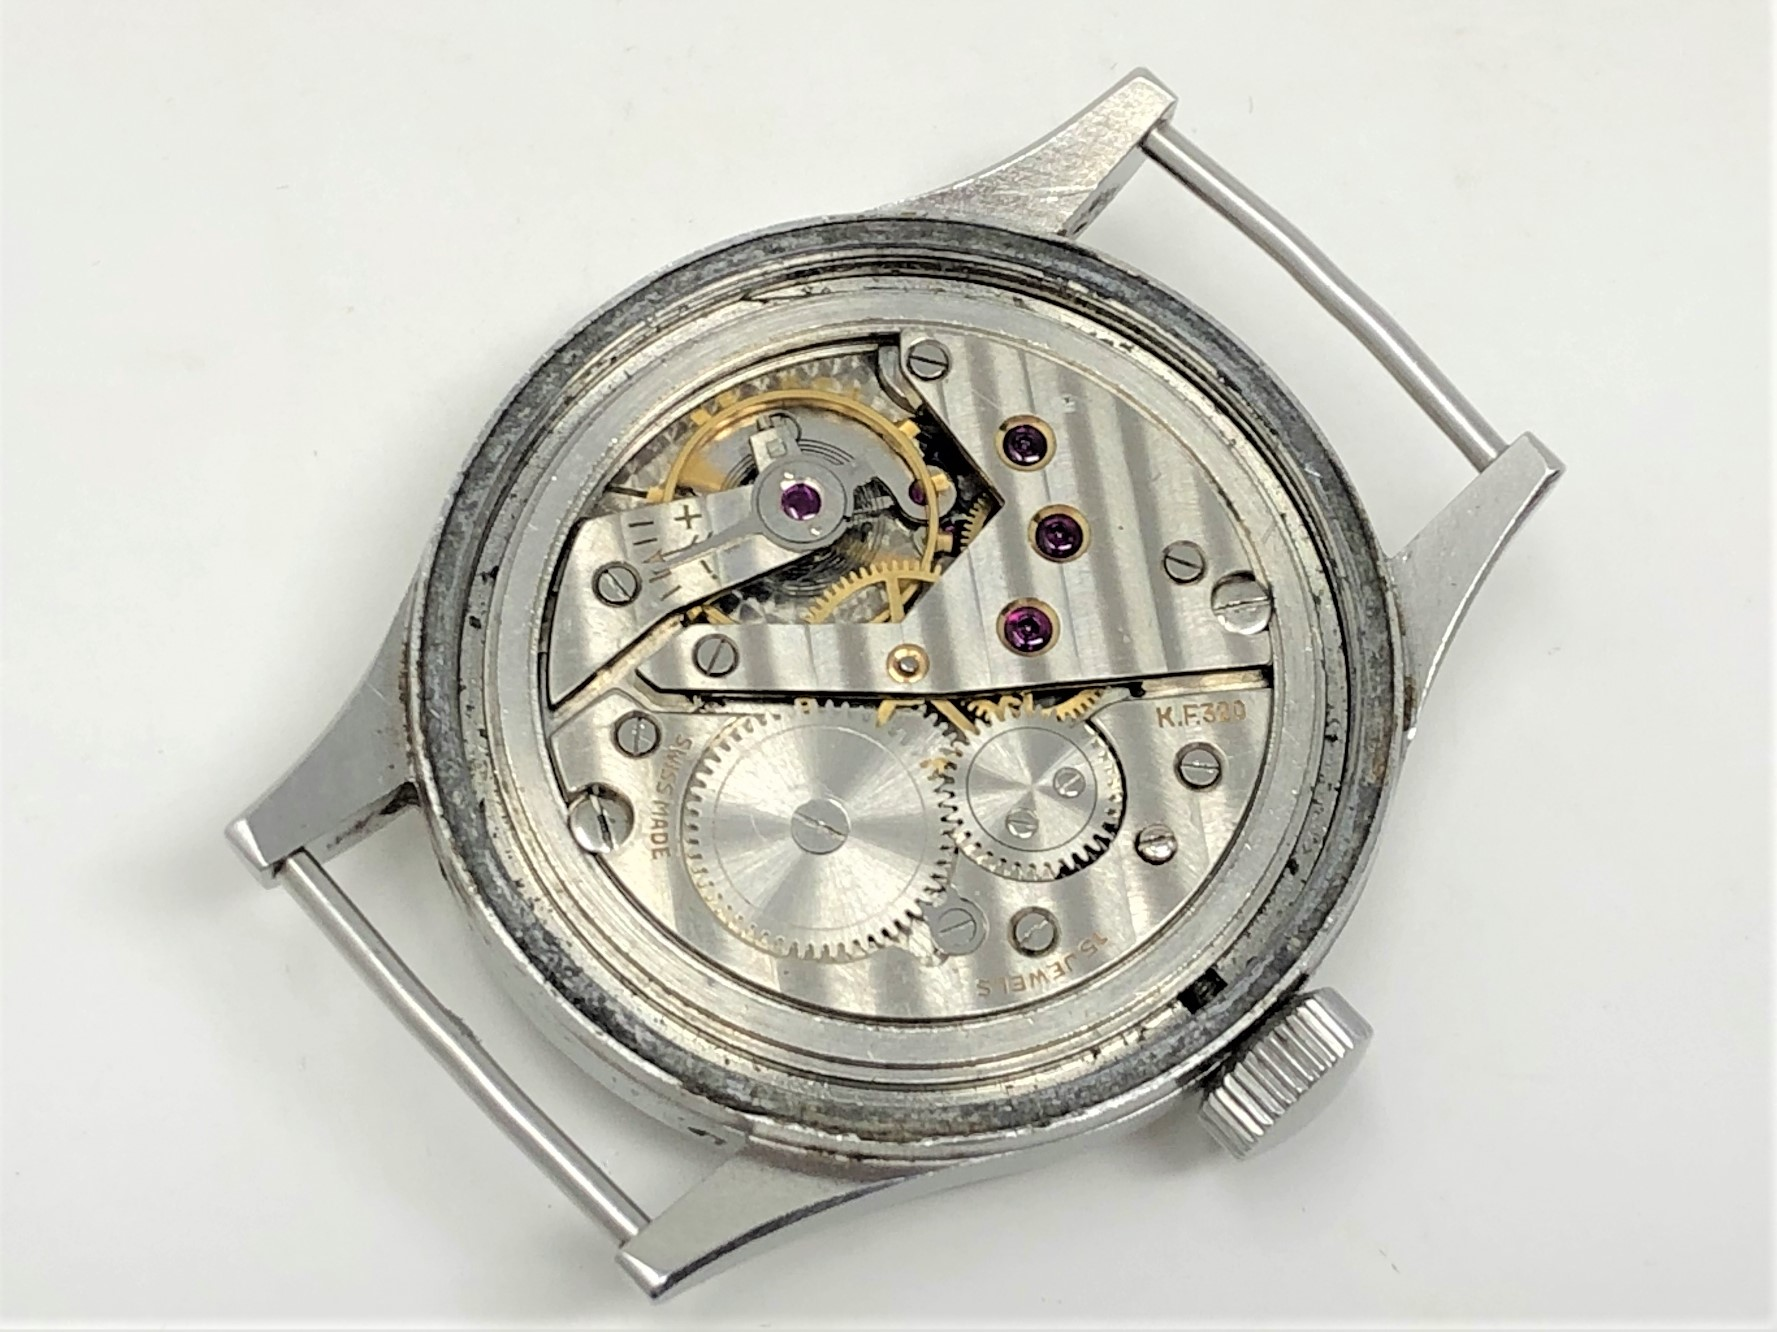 A very rare stainless steel British Military Grana wristwatch, - Image 10 of 11